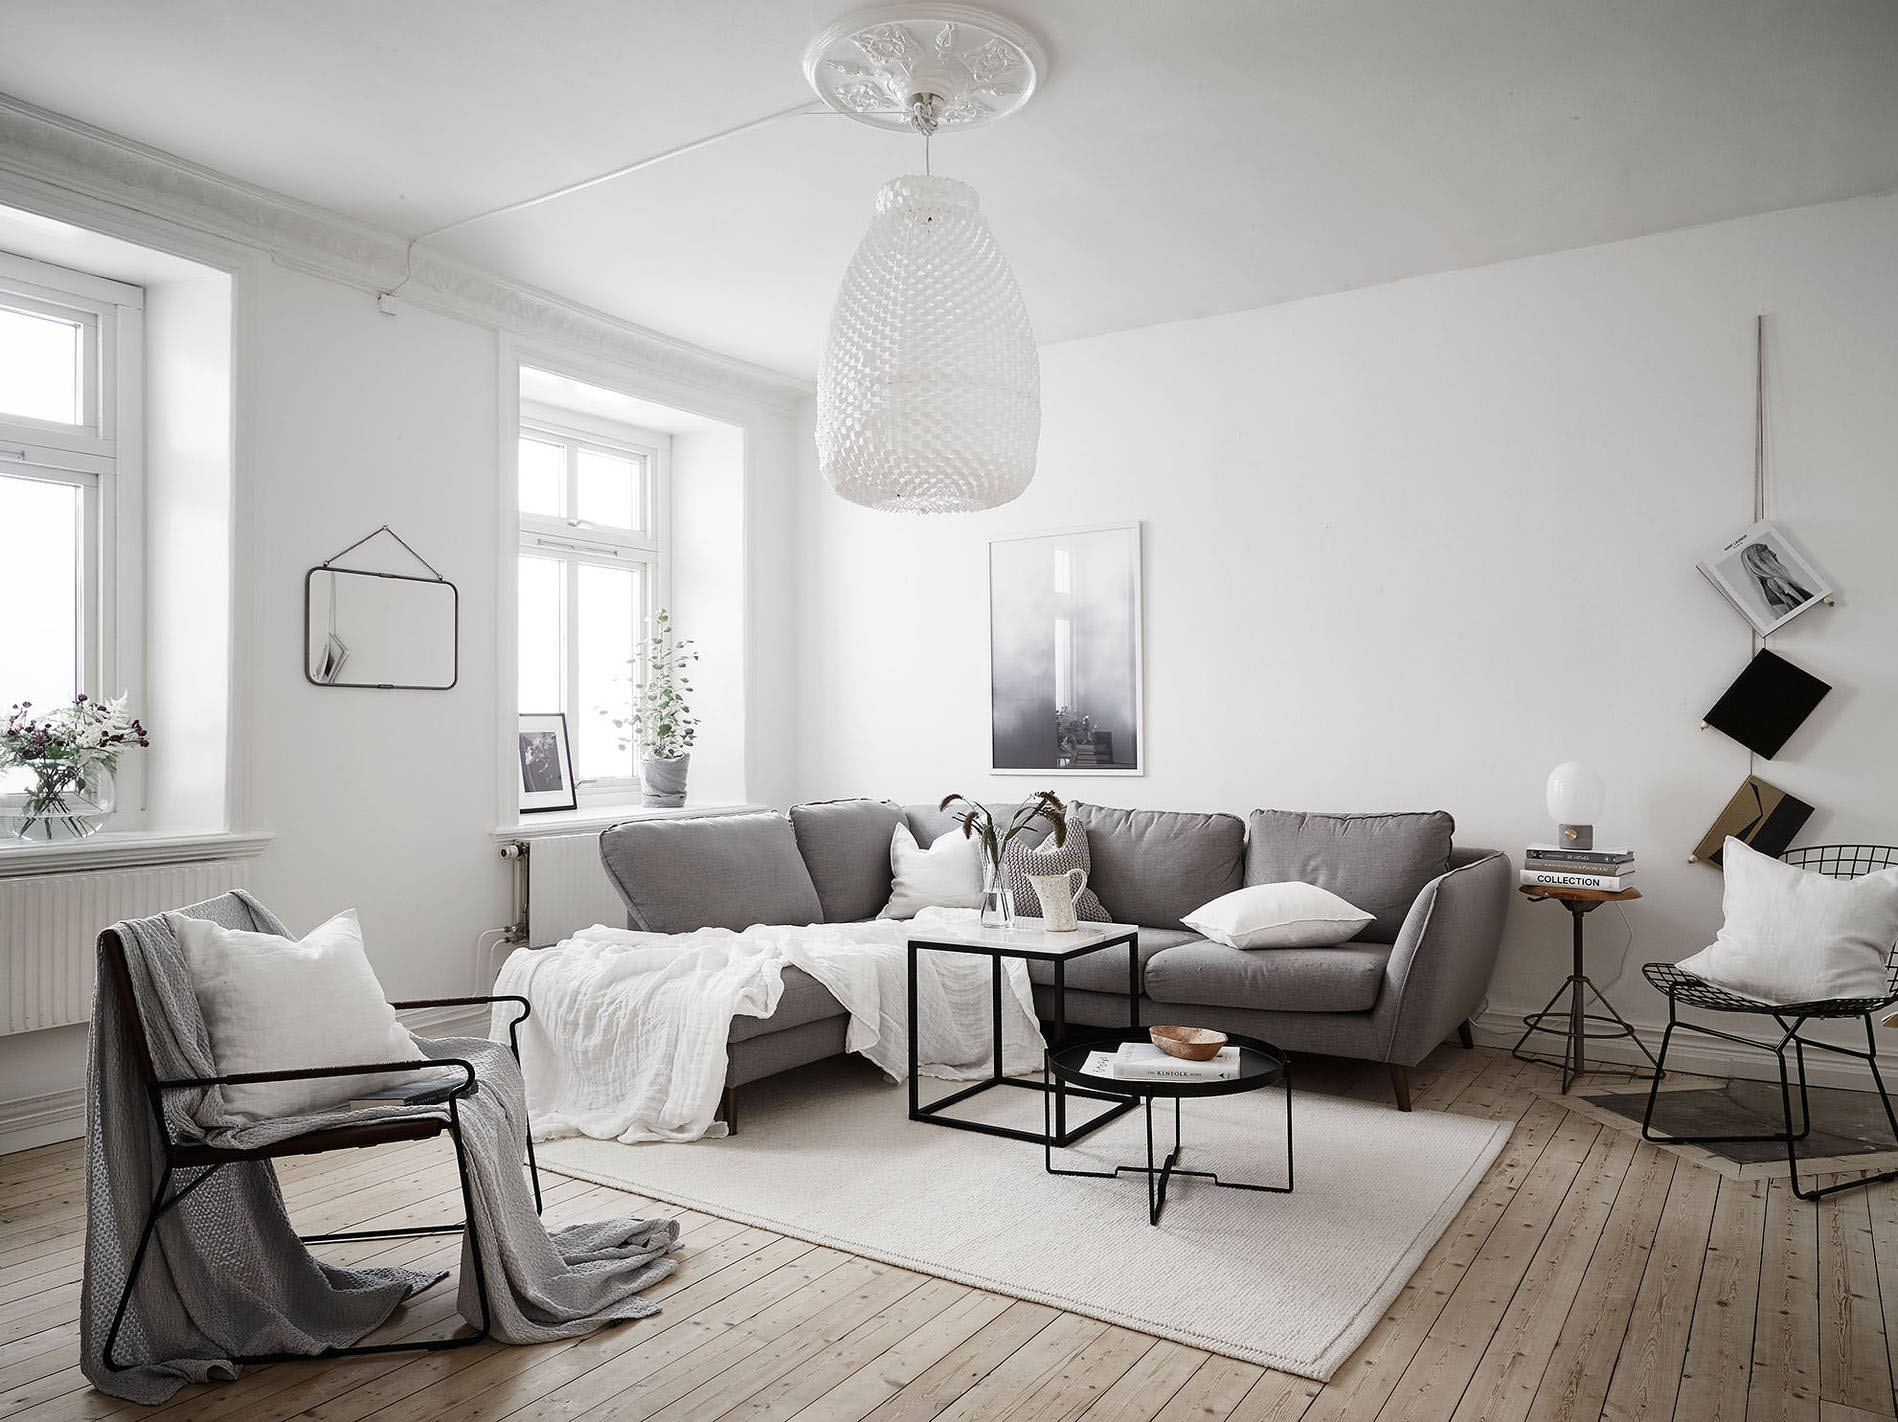 Copper Room Decor Top 10 Tips For Adding Scandinavian Style To Your Home